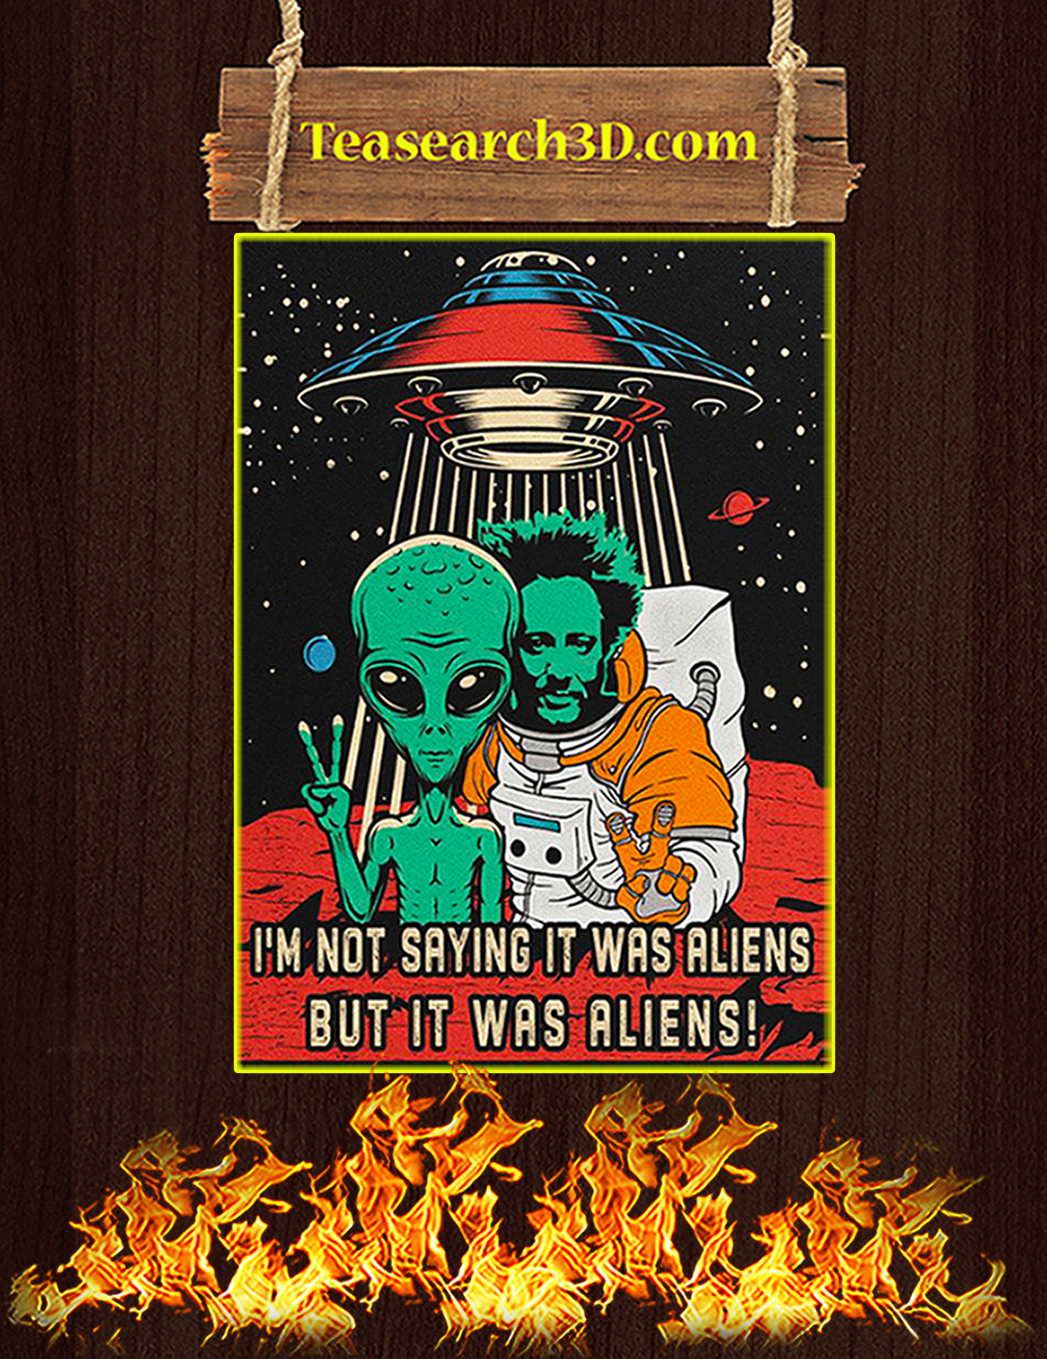 I'm not saying it was aliens but it was aliens canvas prints small